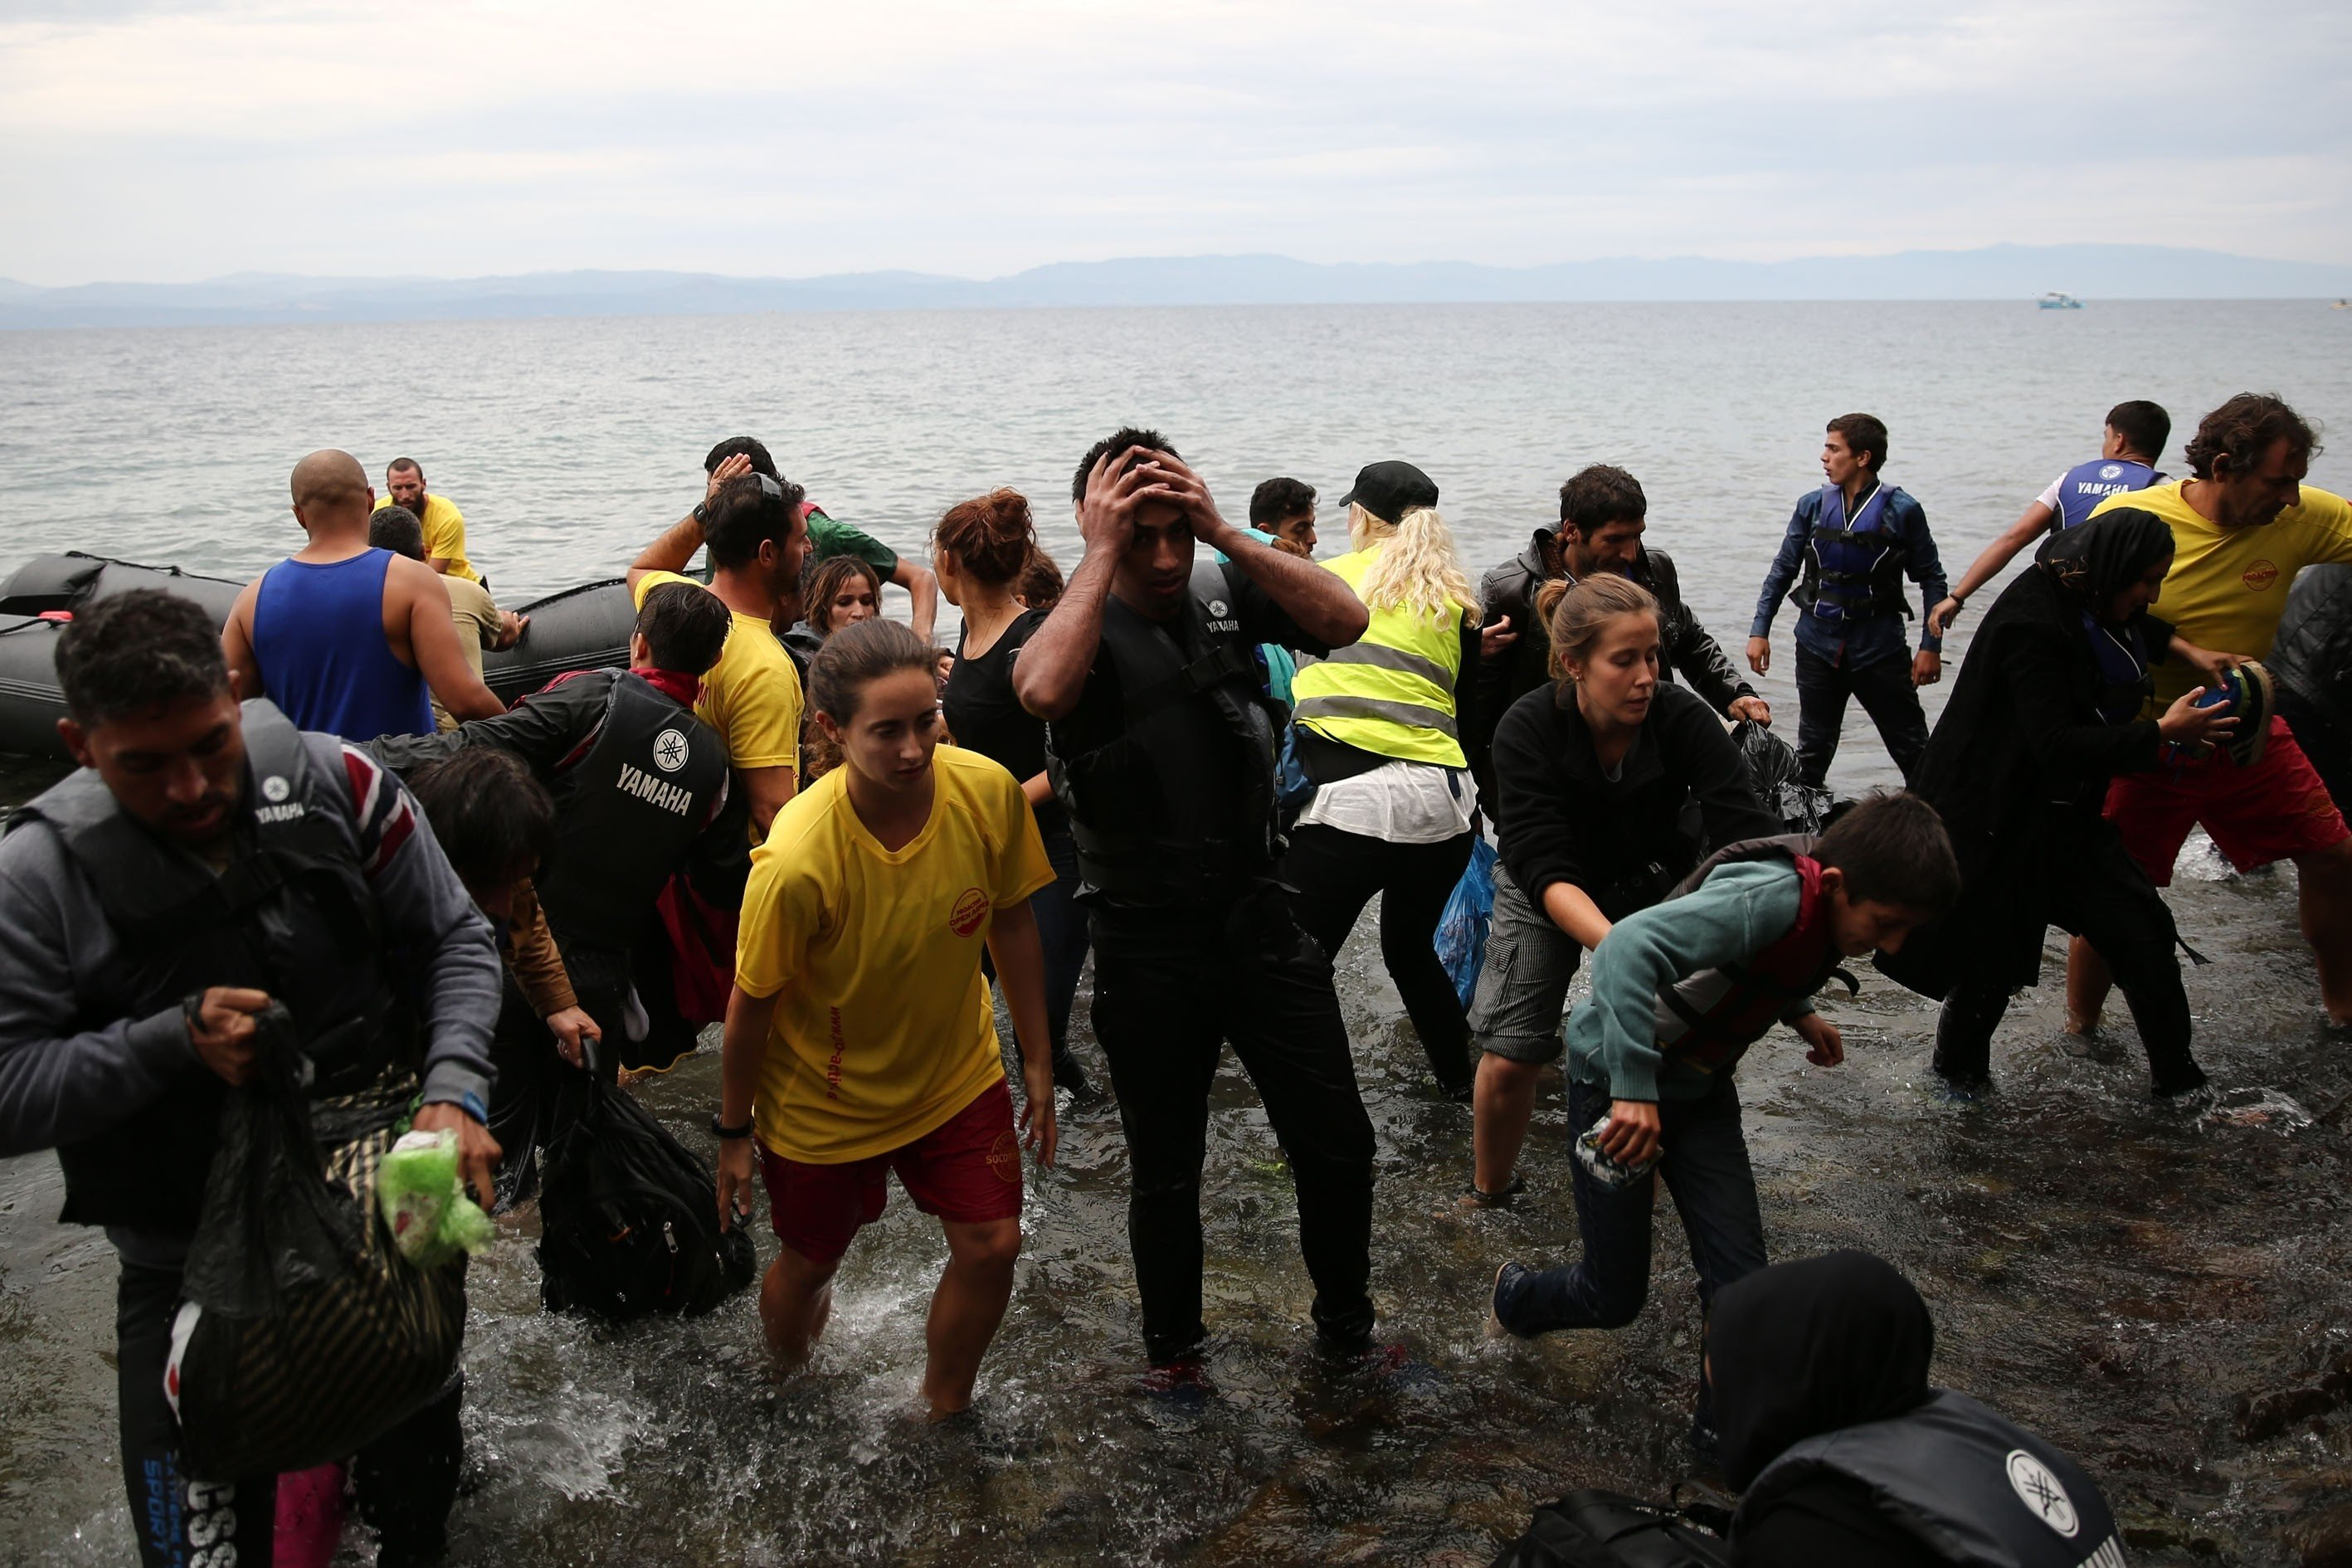 Refugees are seen after they arrived in Greece's Lesbos Island on October 10, 2015. Refugees who begin a journey with a hope to have high living standards away from conflicts, use Greece's Lesbos Island as a transit point on their way to Europe. Photo by Ayhan Mehmet/AA/ABACAPRESS.COM